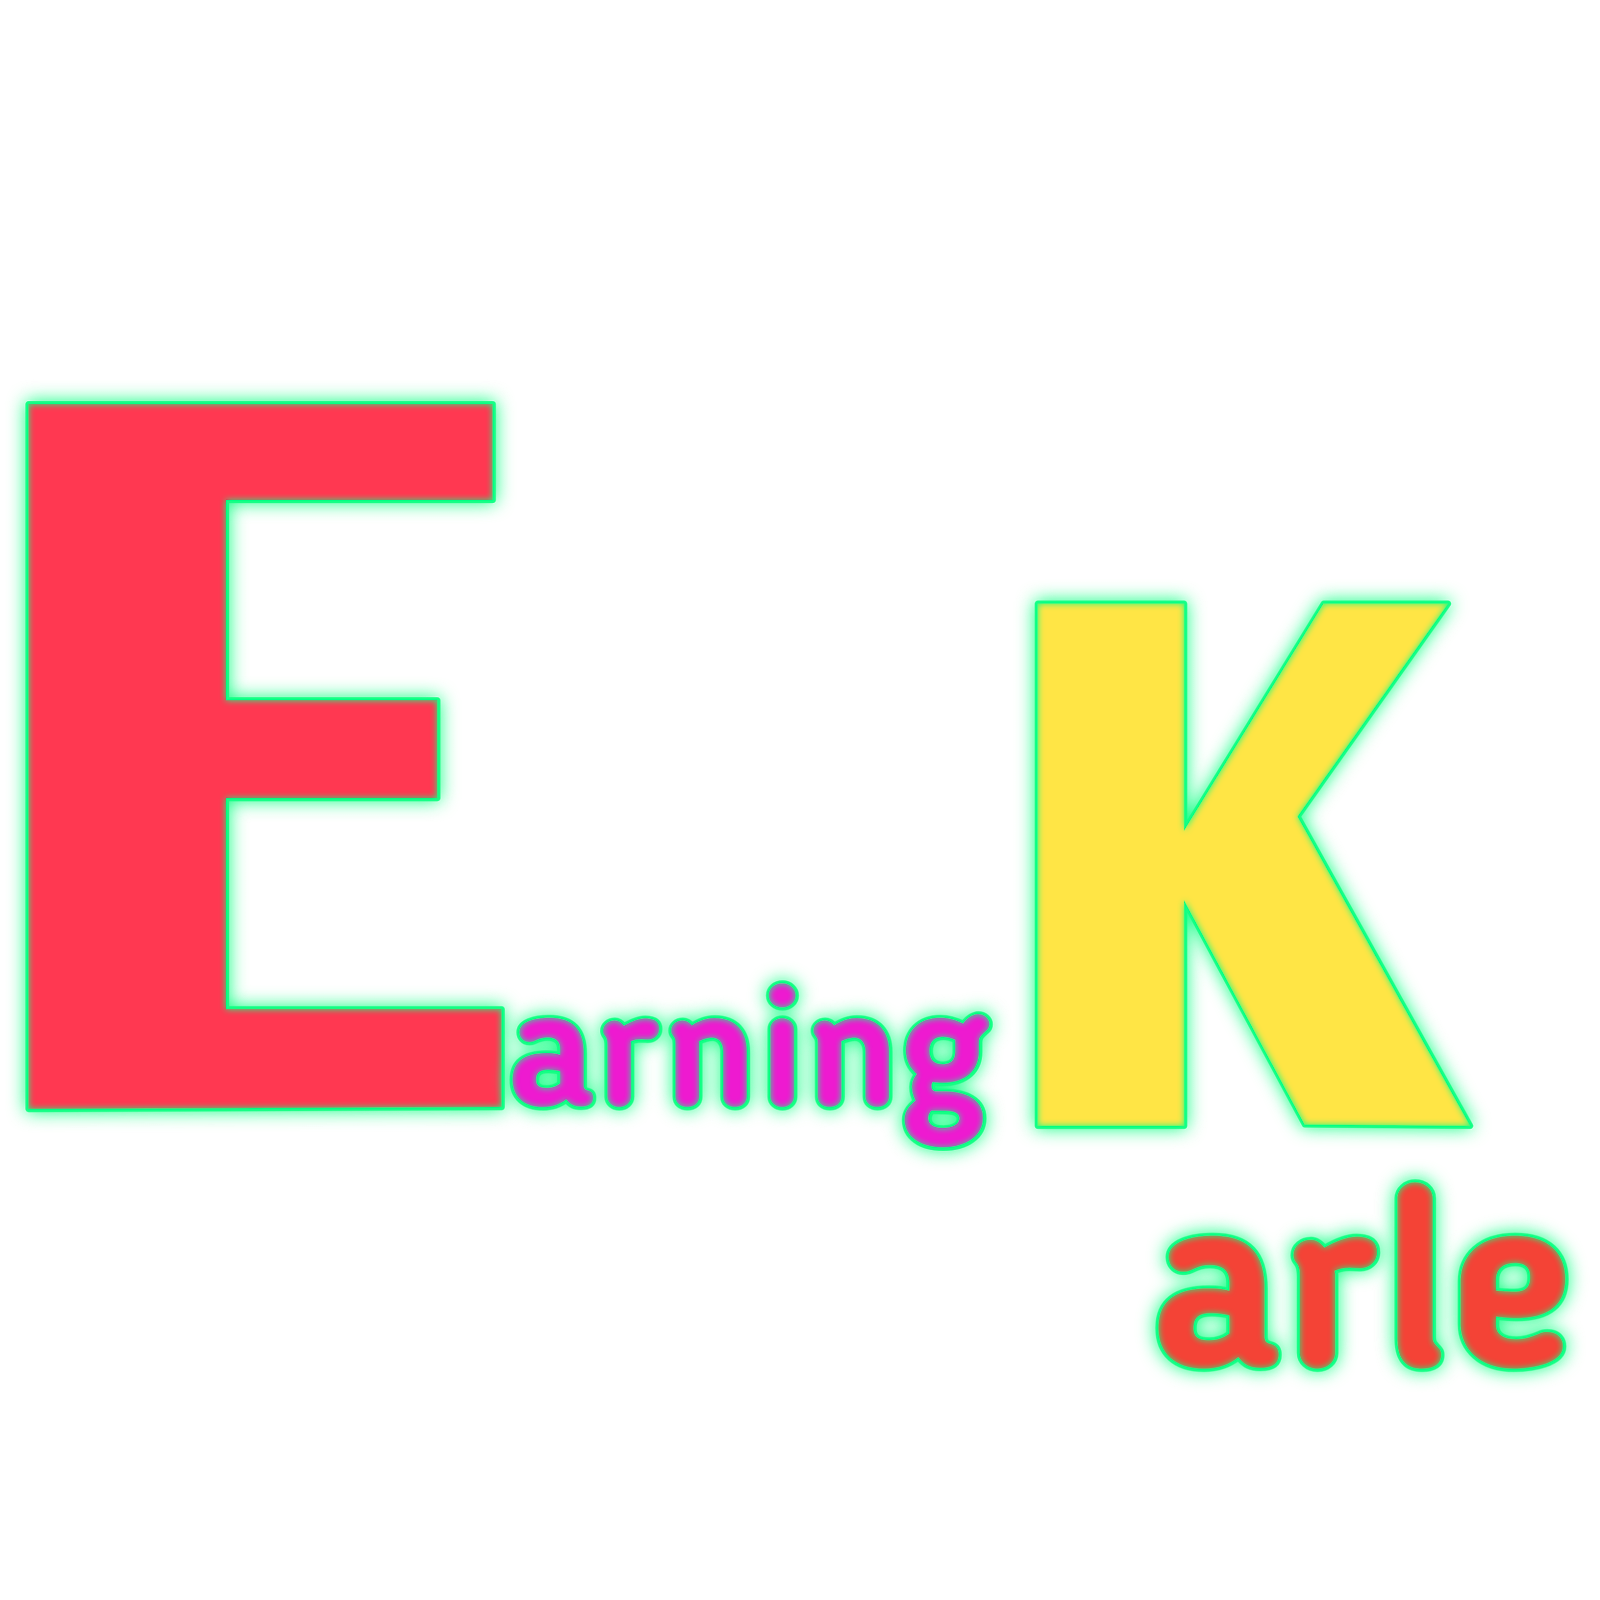 Earningkarle